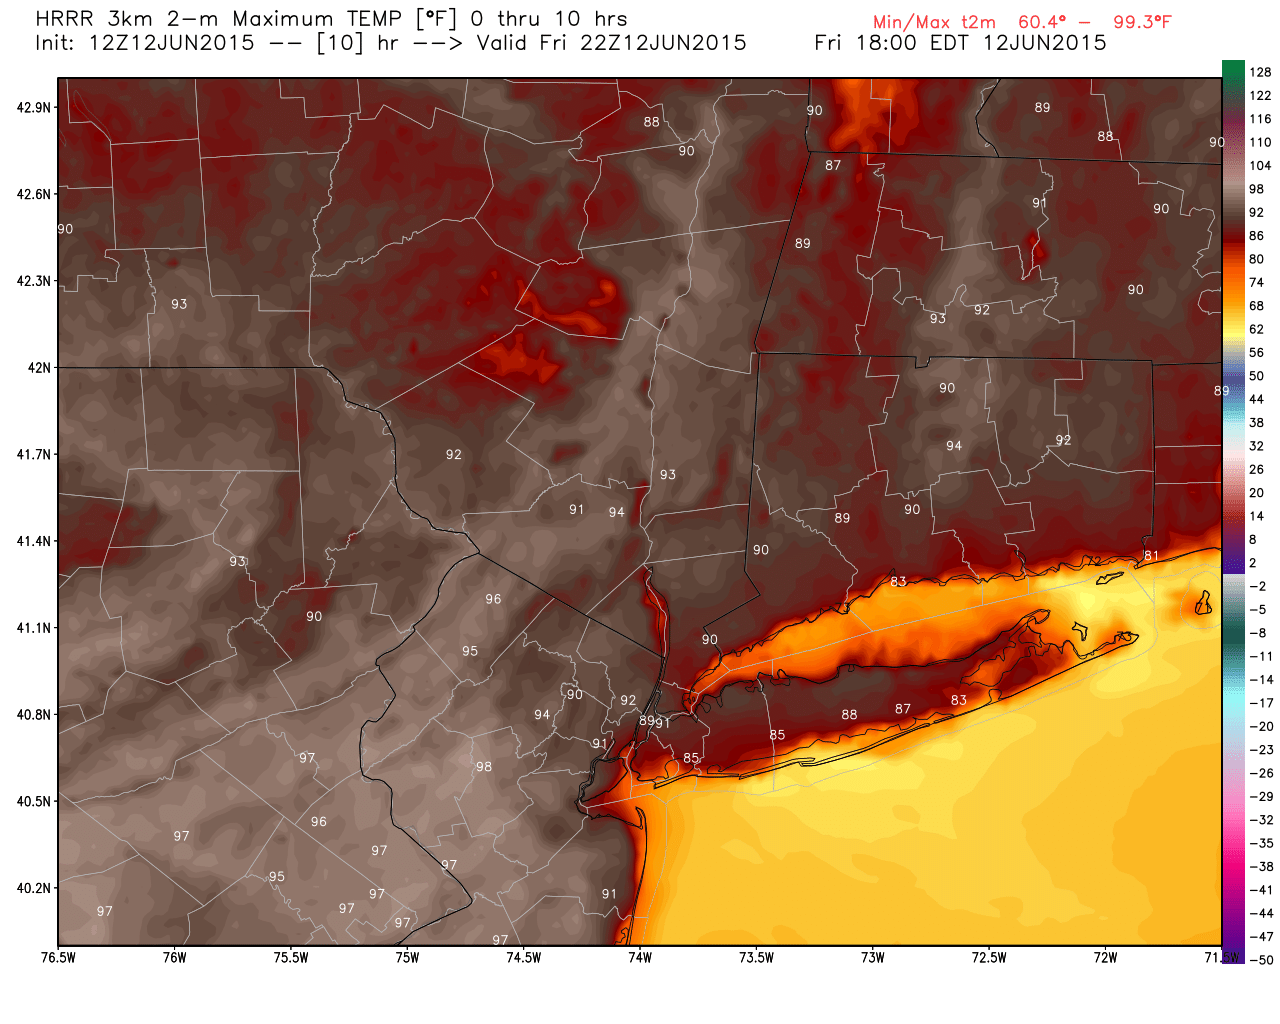 Temperatures this afternoon could approach the mid 90's again in NJ, away from the coast.